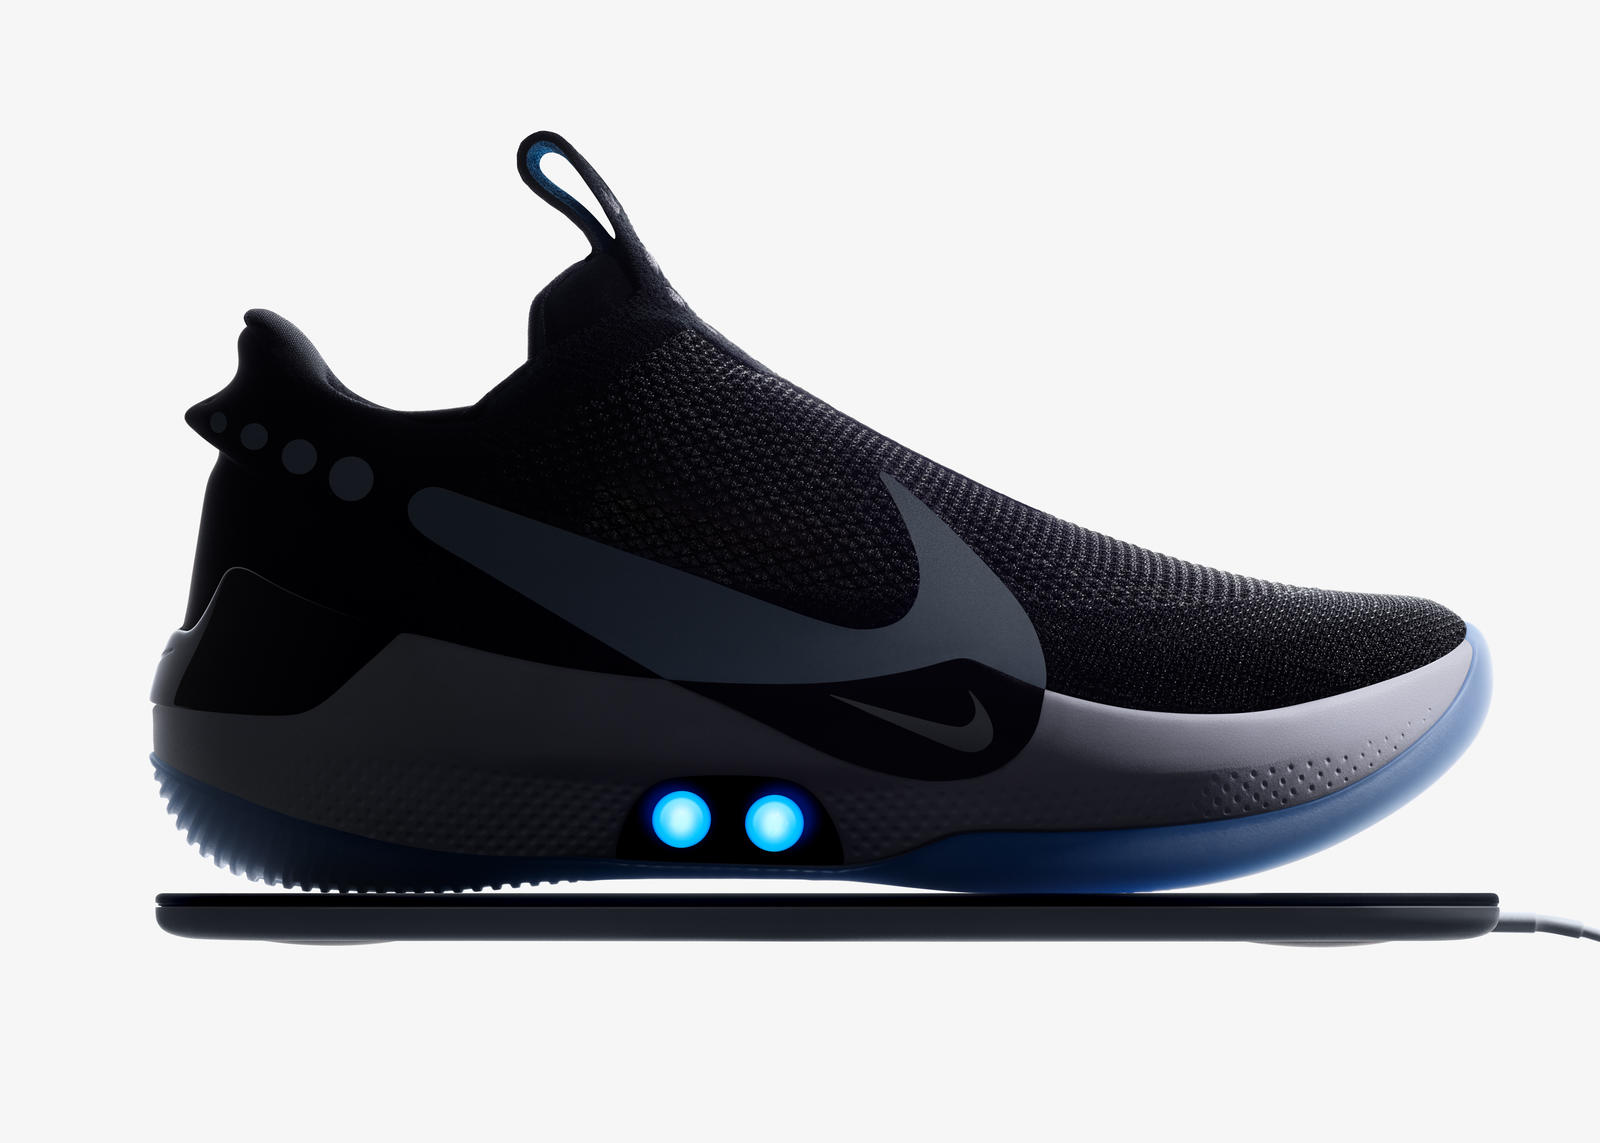 Sp19_BB_Nike_Adapt_20181218_NIKE0538_Detail5_rectangle_1600.jpg